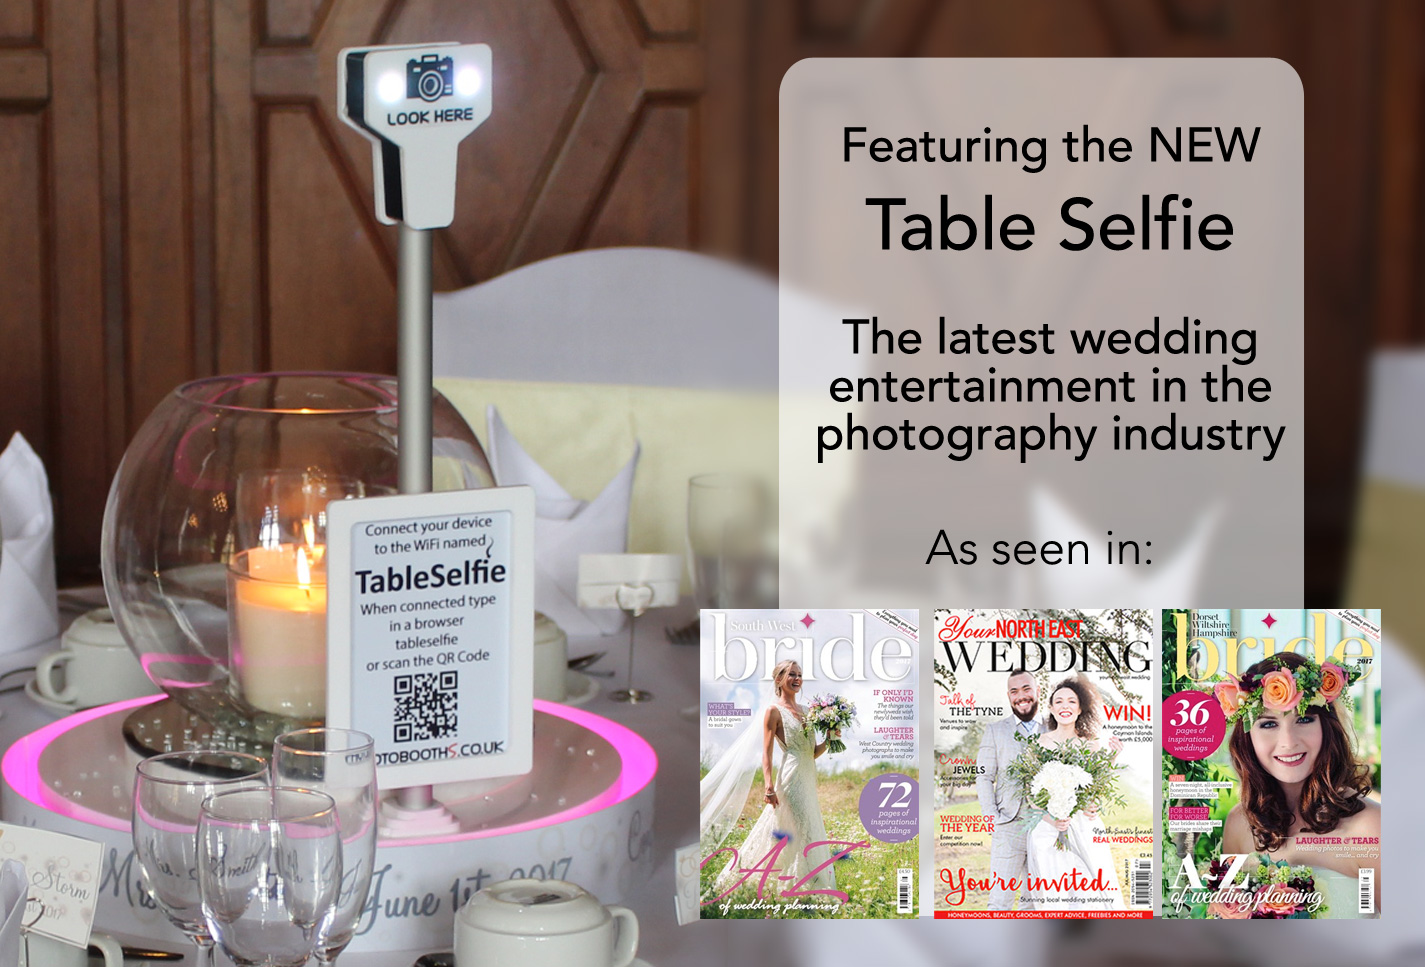 TableSelfieFeatures